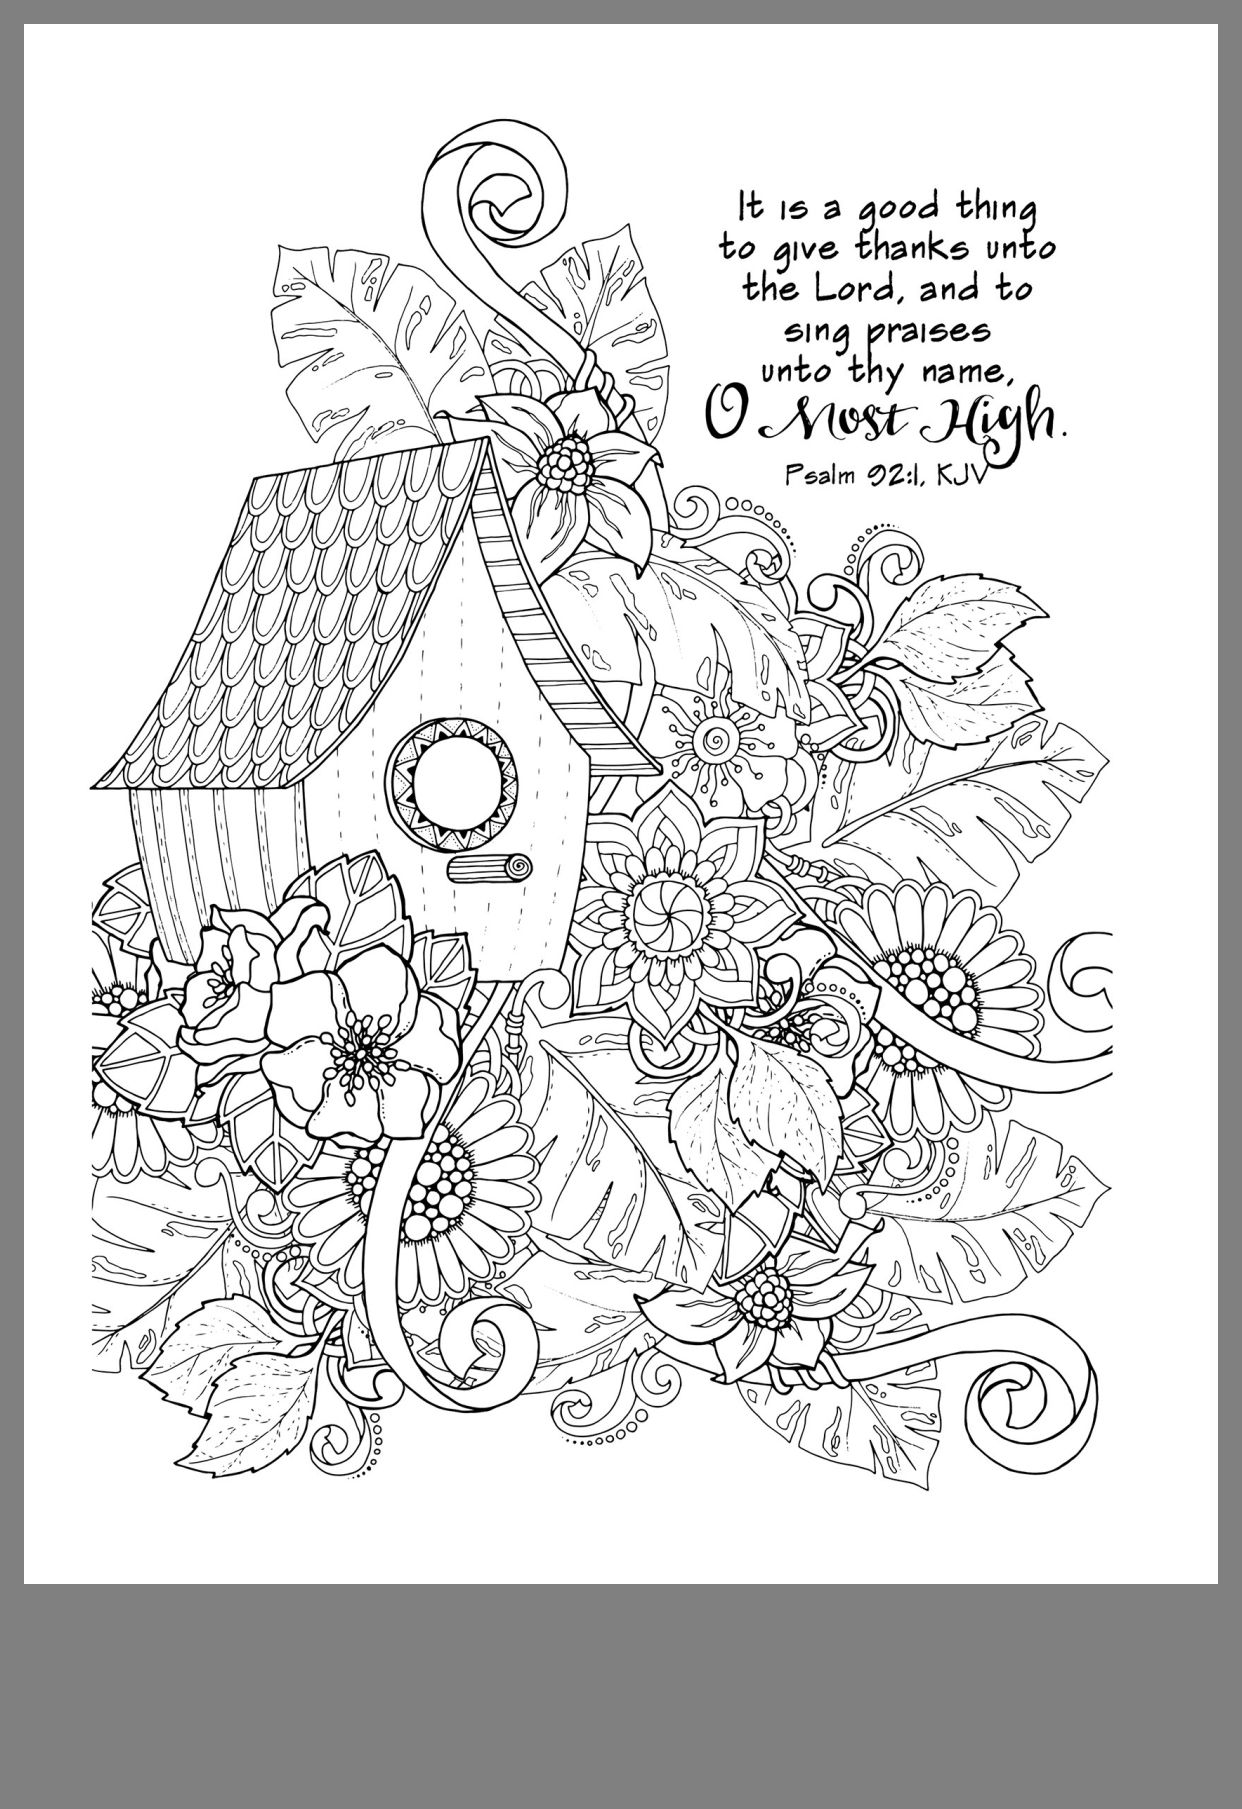 C36f6a5c969b47db71a08e5932656ebd_coloring Book Top Notch Freerintable  Religious Easter Coloring _2560 Fantasticages For Toddlershoto Ideas –  Dialogueeurope | 1809x1242